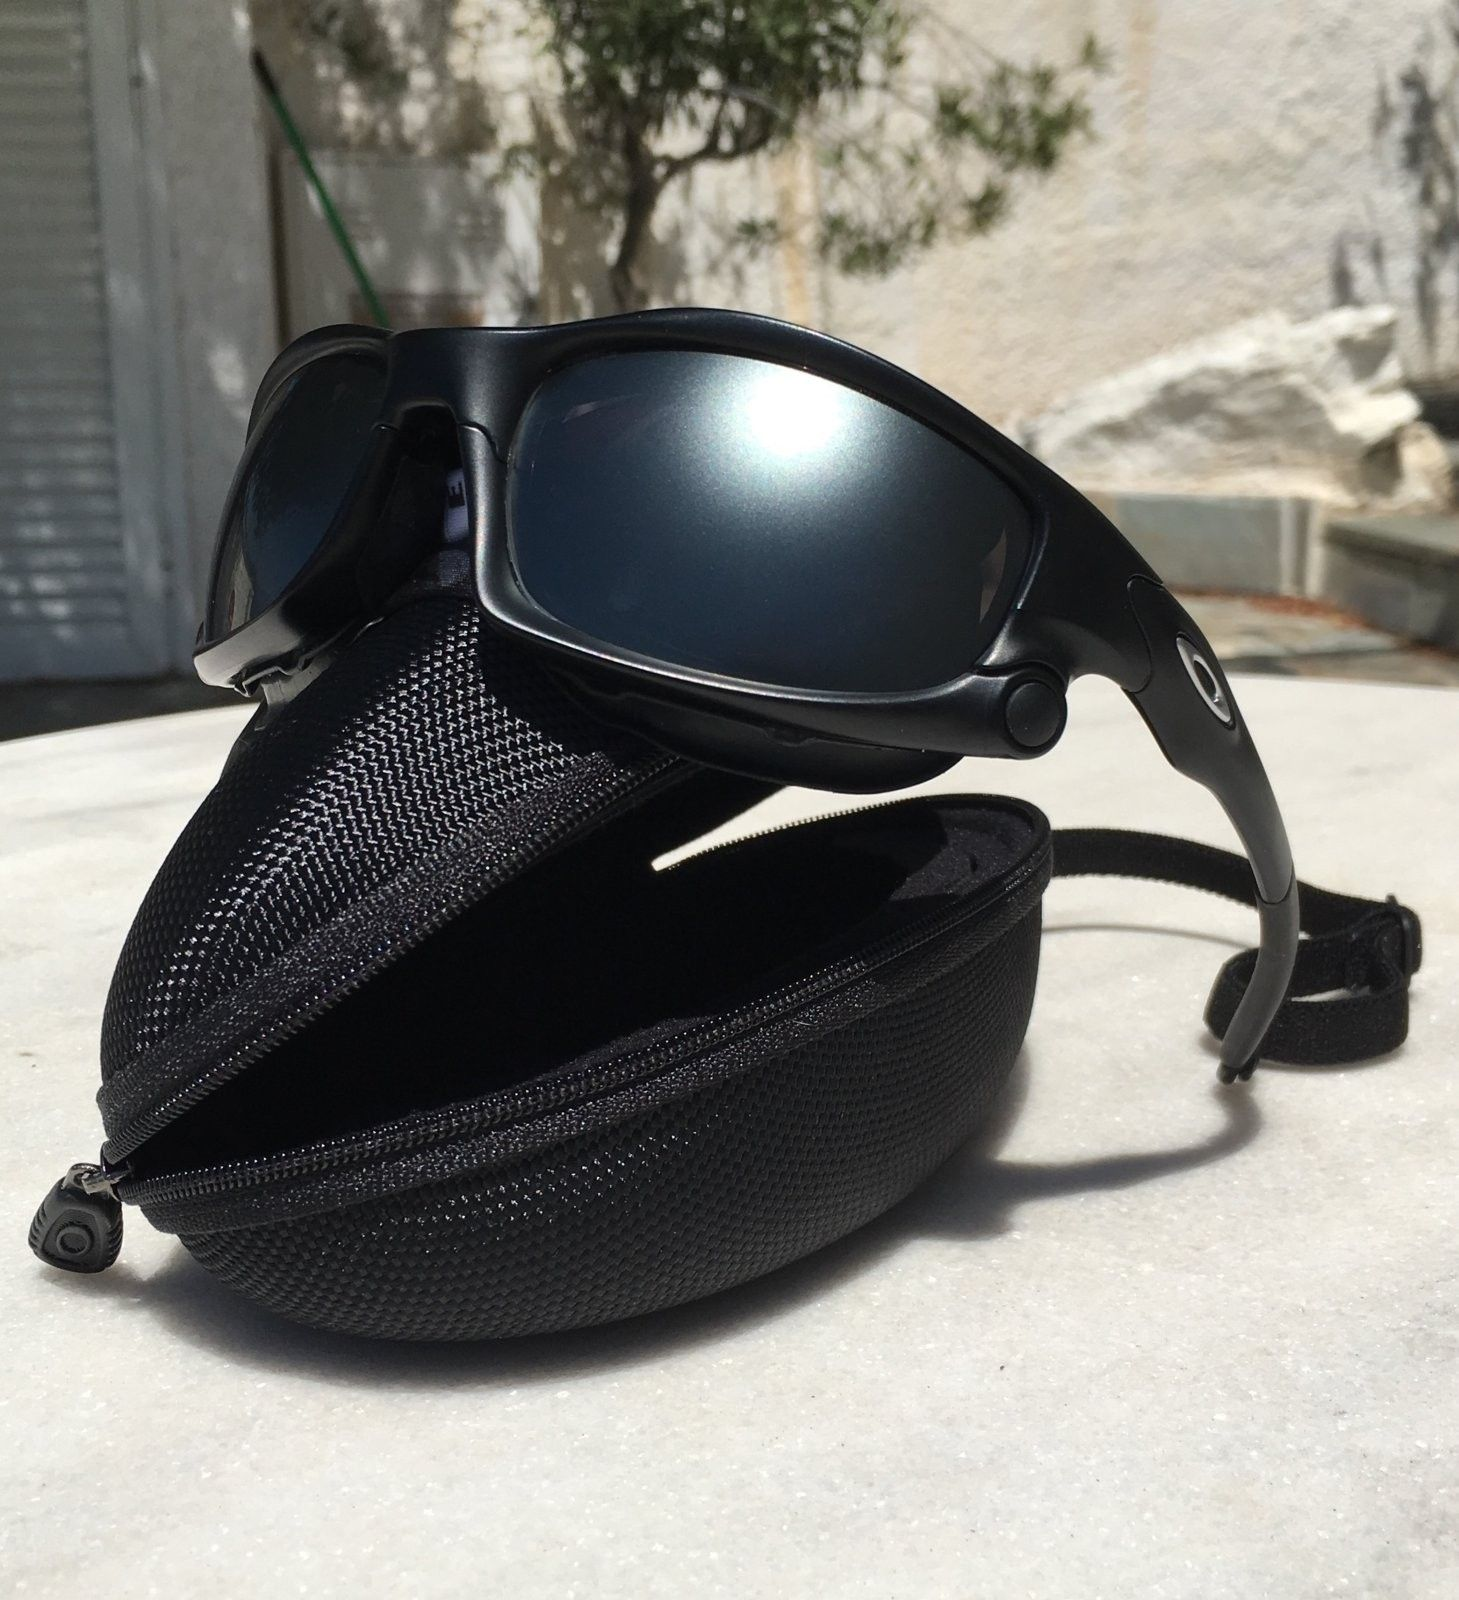 Split/Wind Jackets with Dillon Matte Lenses (Rare) - FullSizeRender 3.jpg